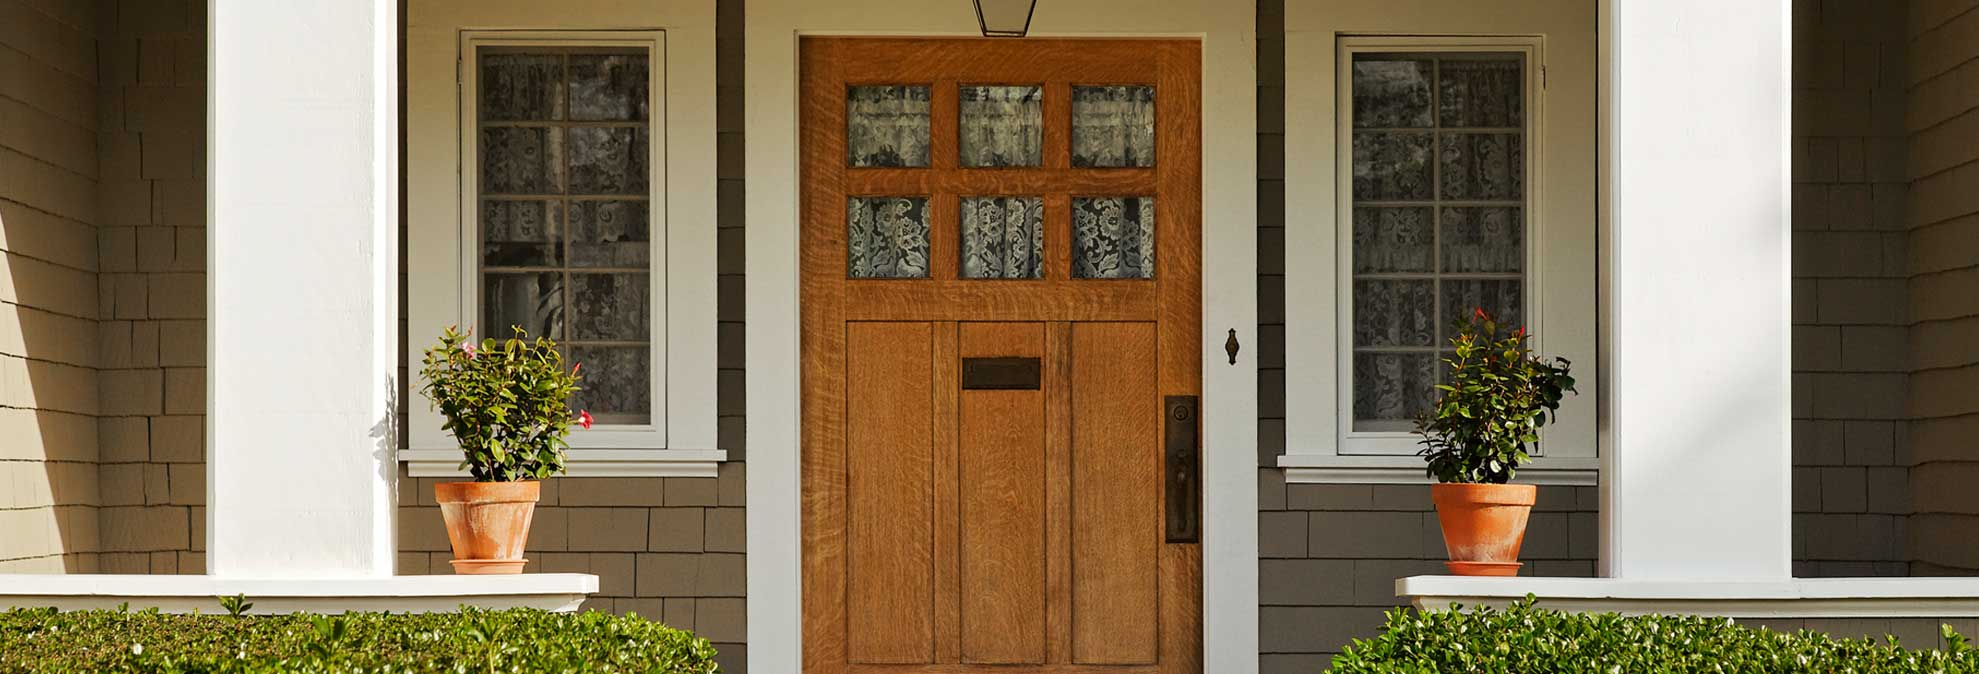 entry doors best entry door buying guide - consumer reports VLMUKXB